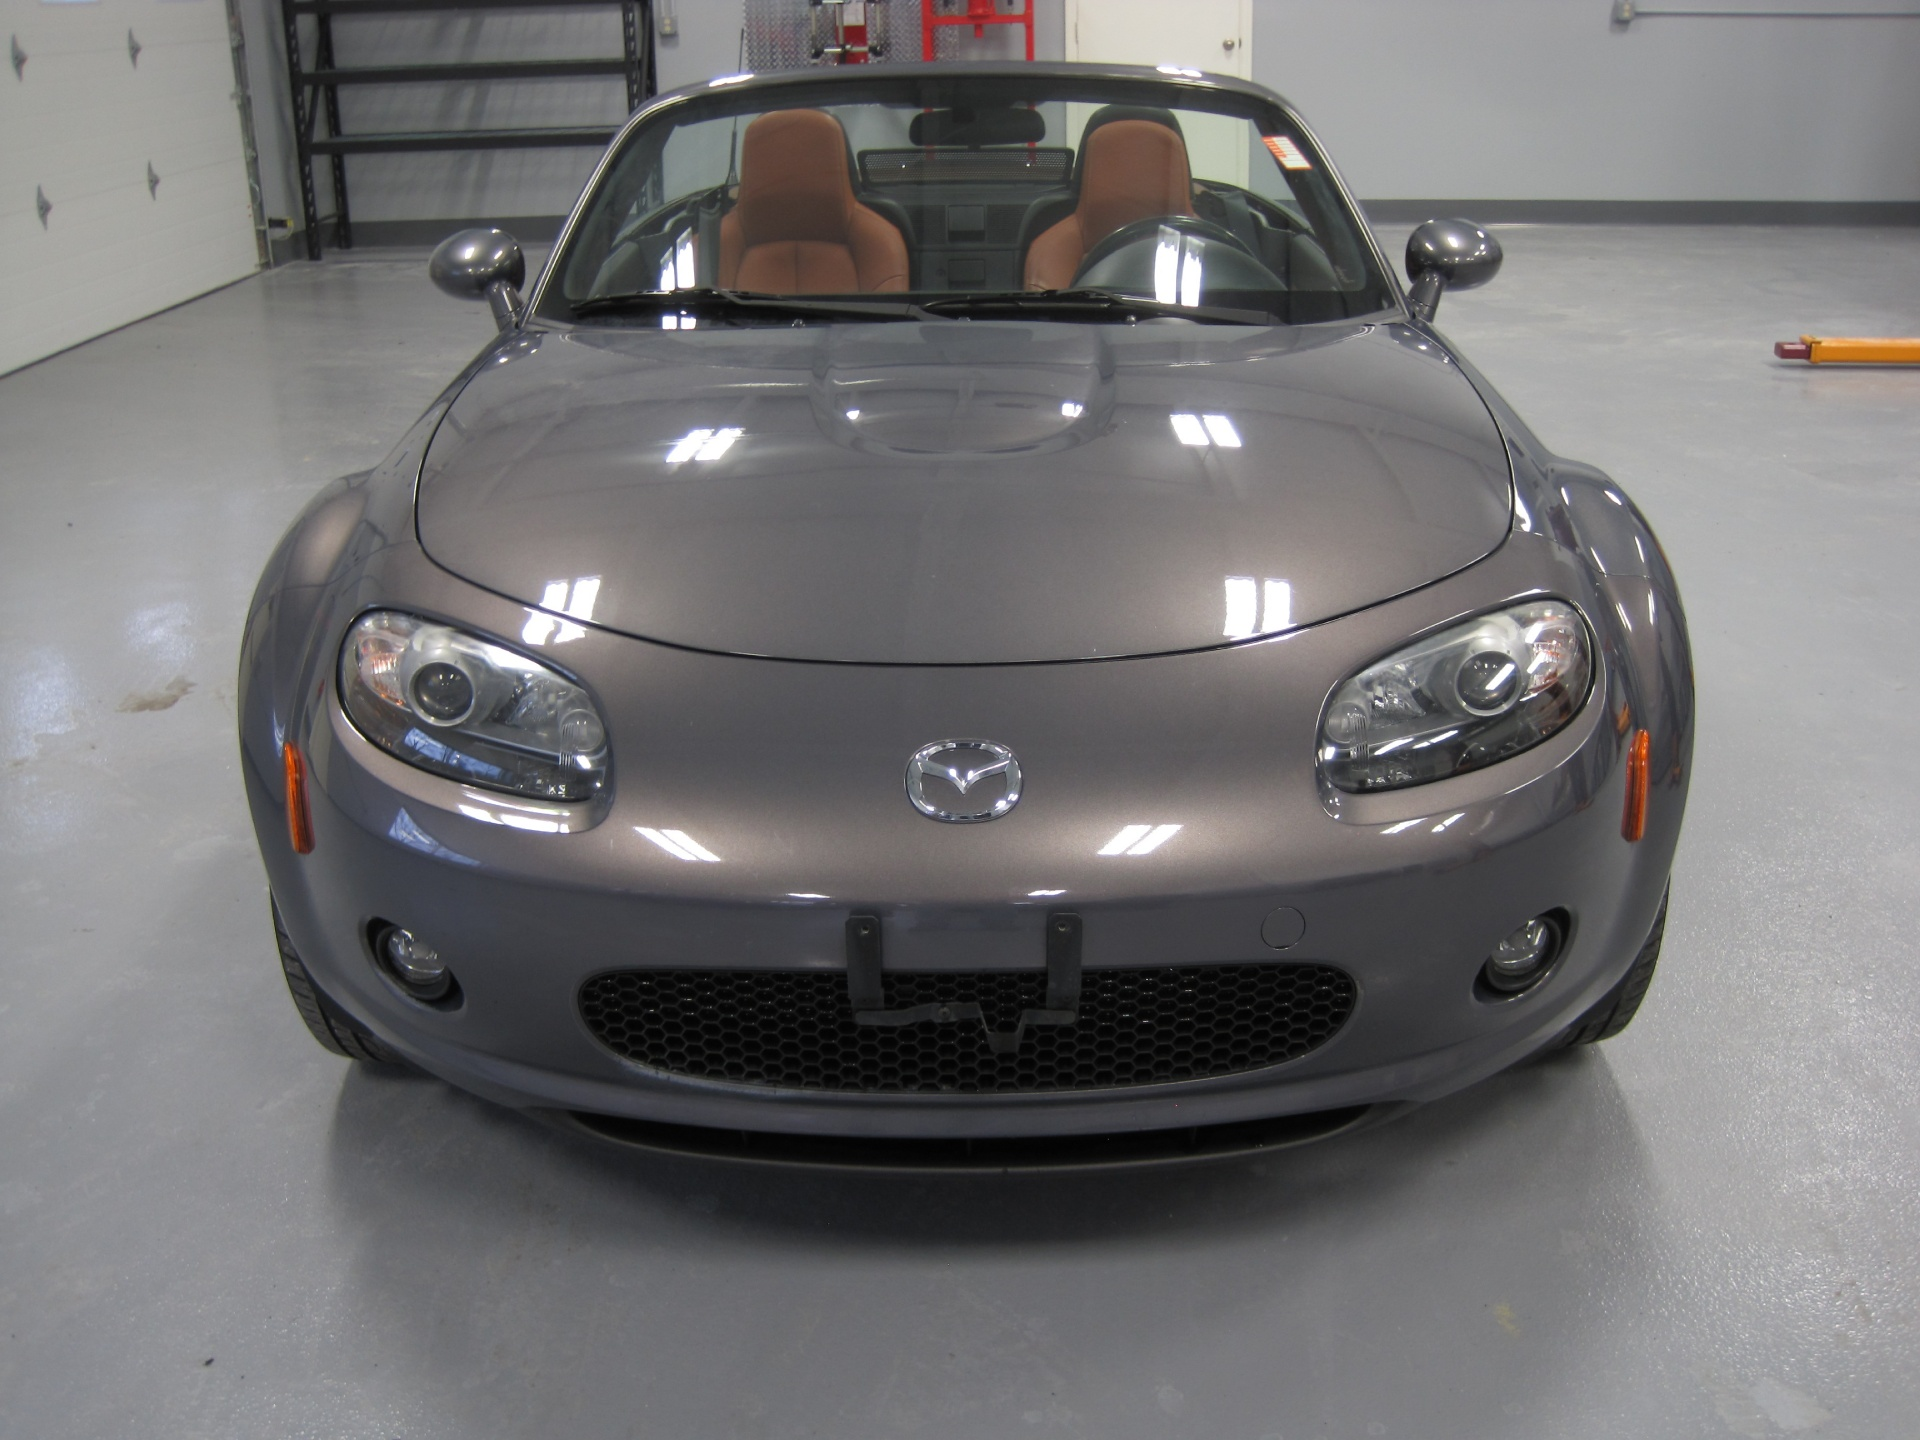 Used 2006 Mazda MX-5 Miata Grand Touring RARE 6 SPEED MANUAL | Albany, NY